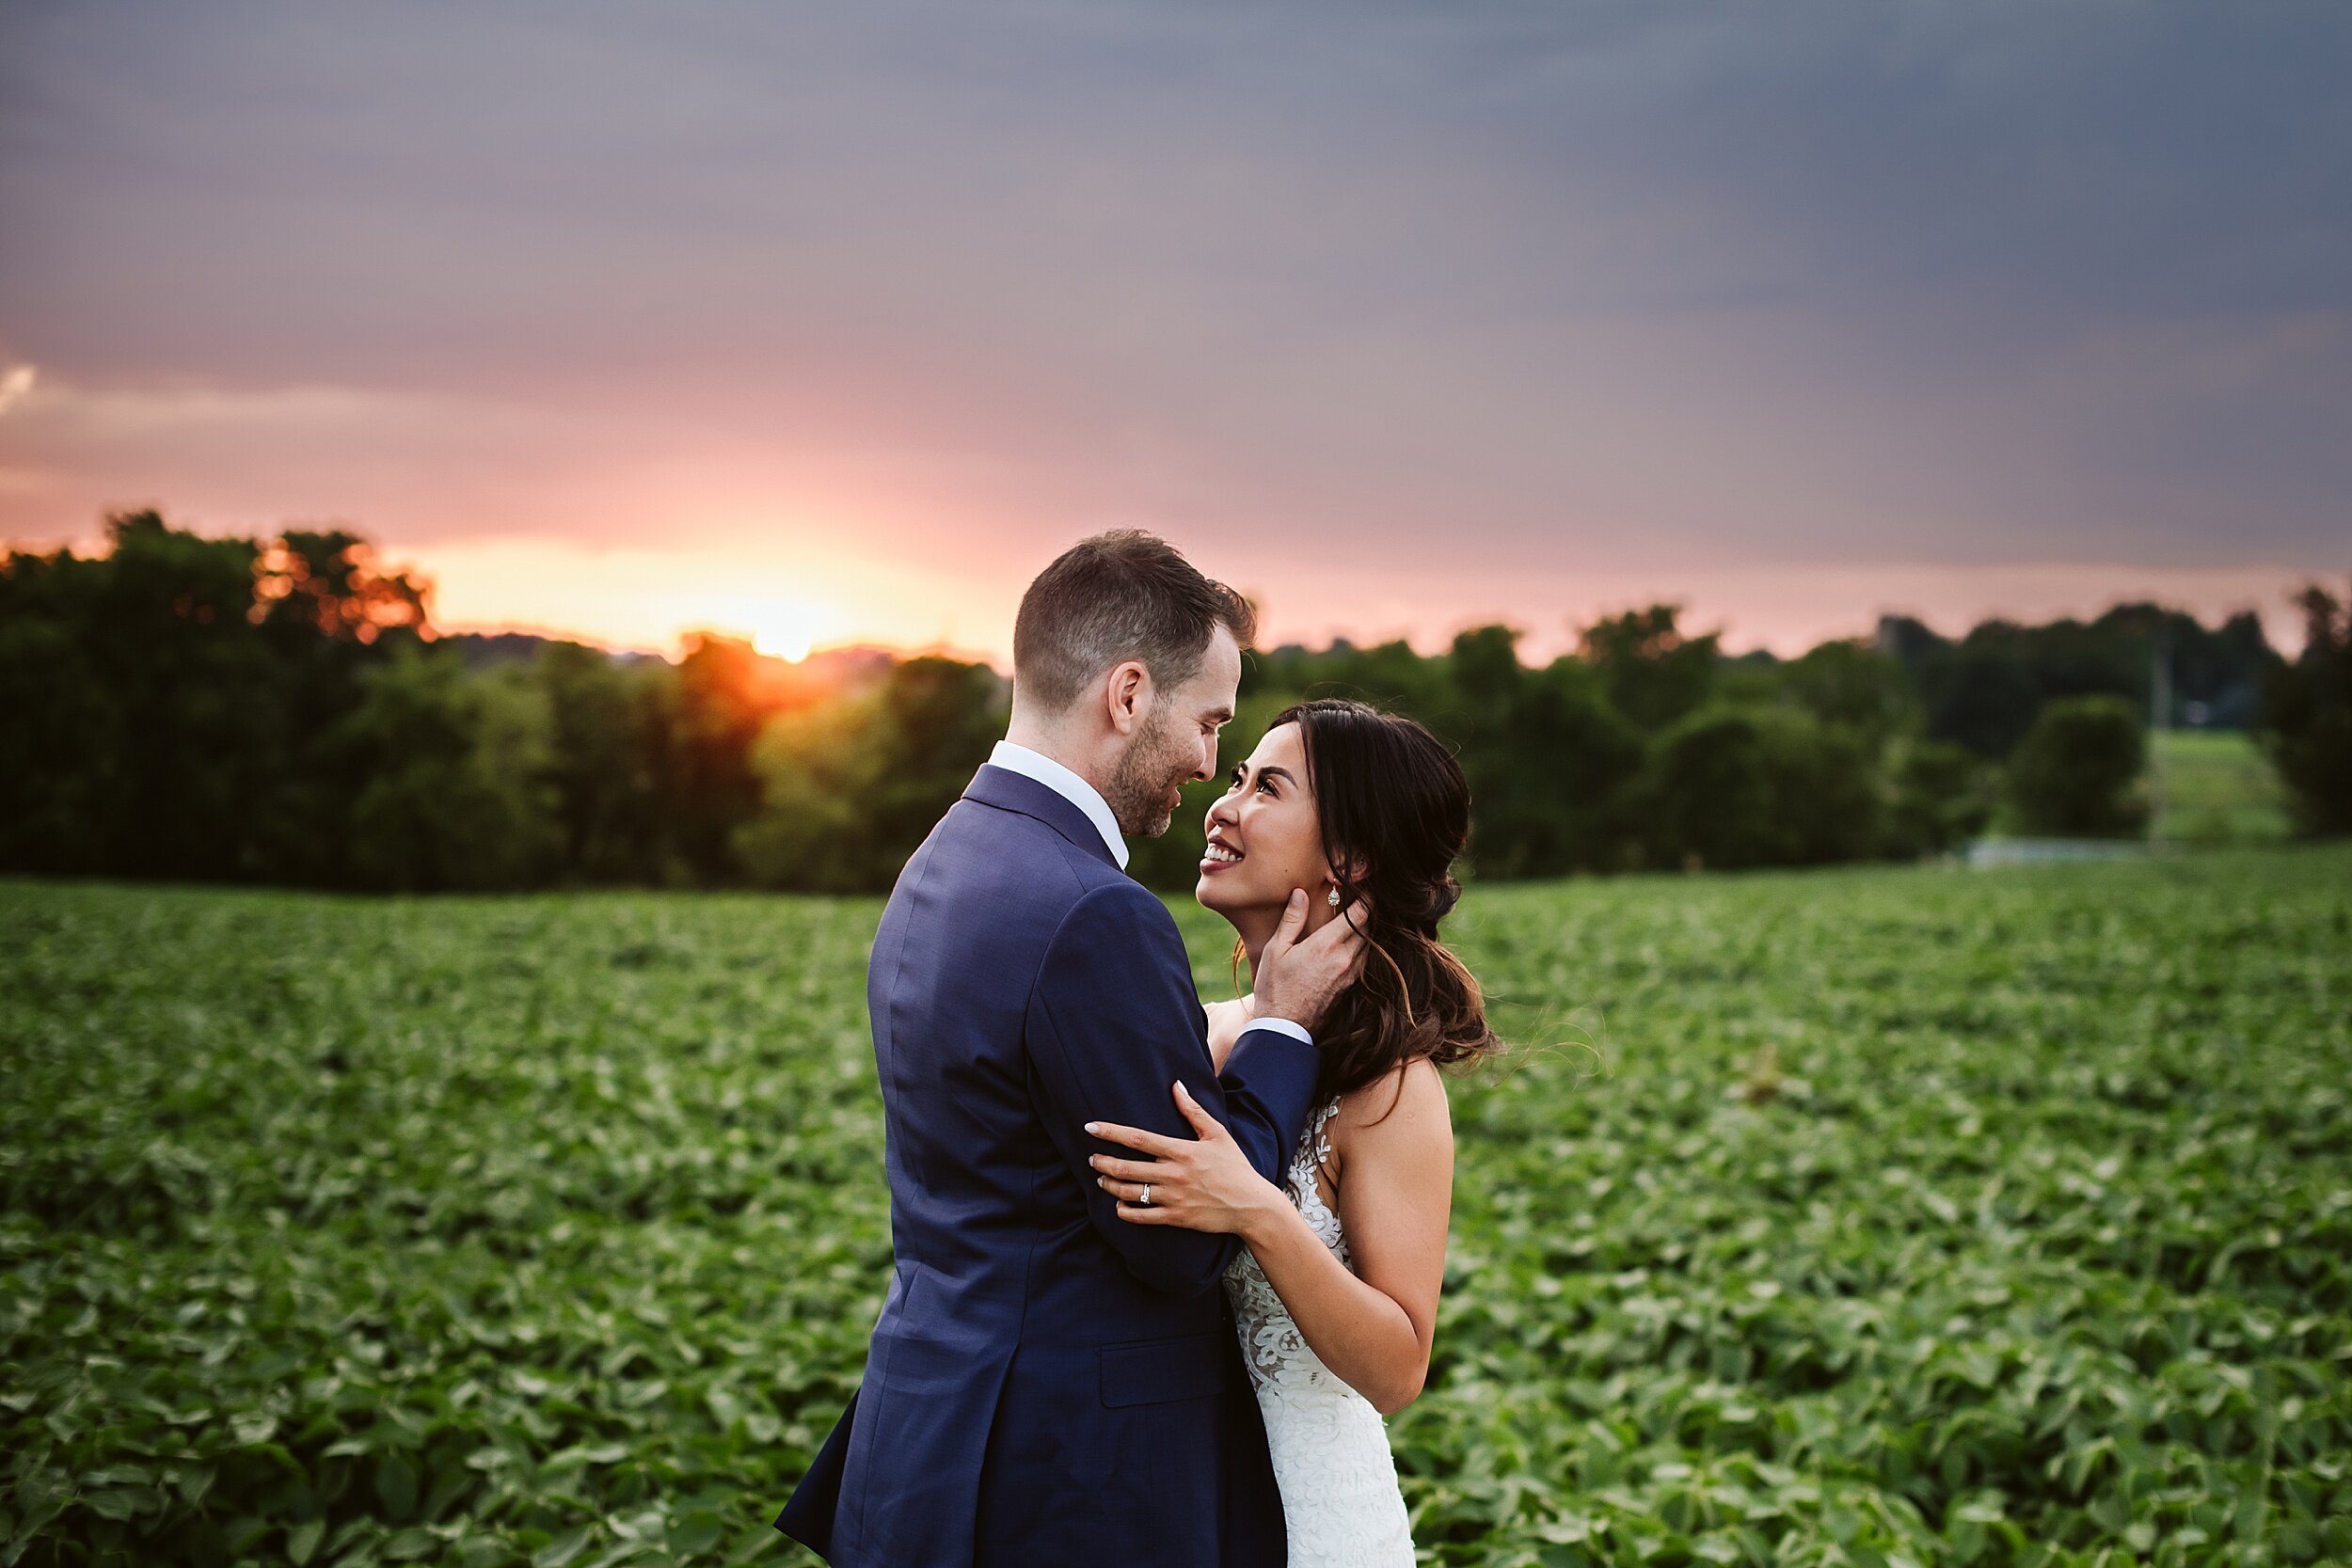 Glen_Drummon_Farm_Wedding_Toronto_Photographers_Fox_Photography_Dyments_0055.jpg